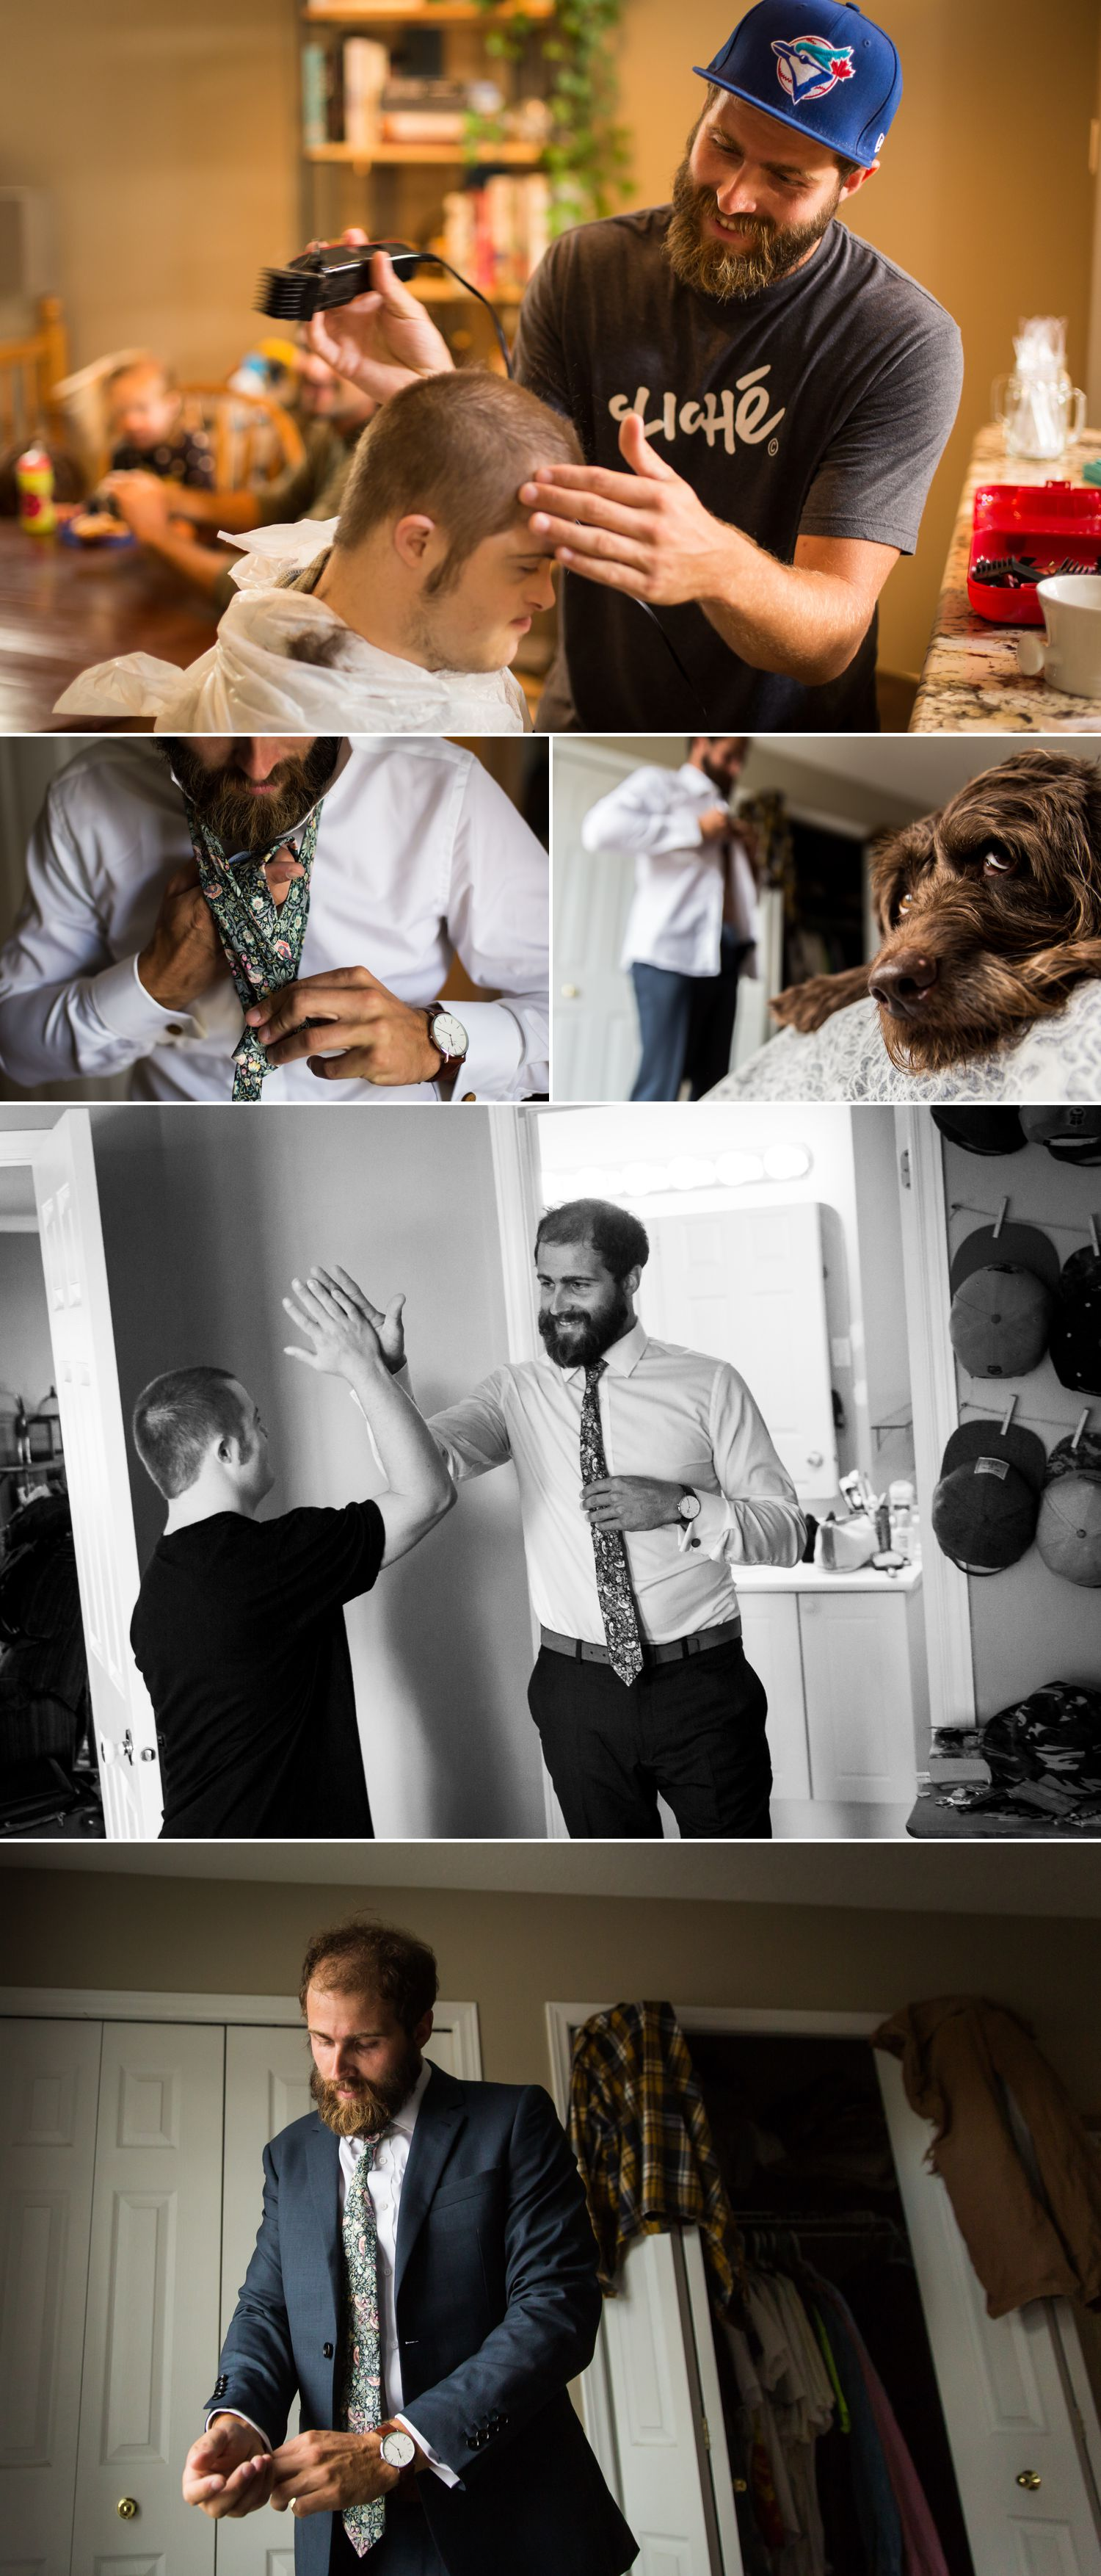 The groom getting ready with his brother at home